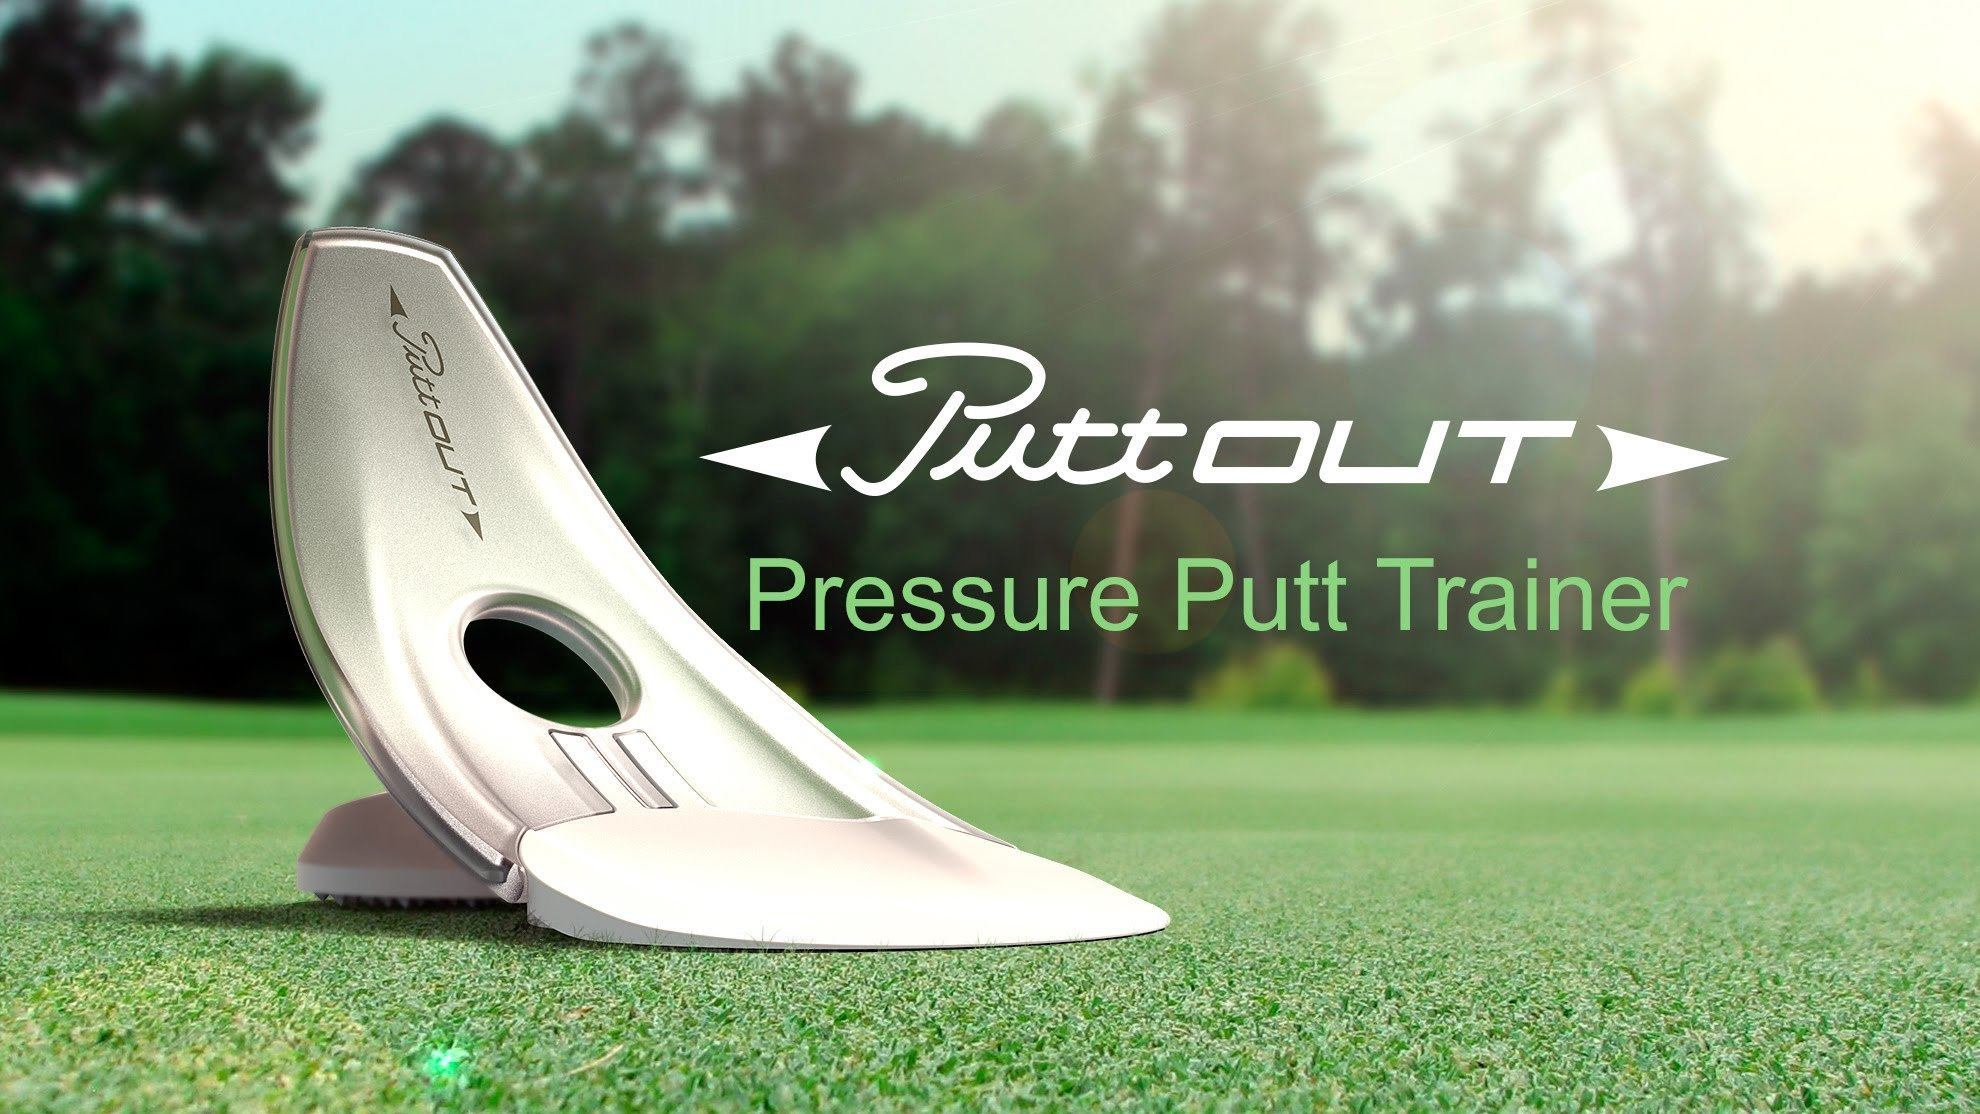 PuttOut Pressure Trainer Reviewed